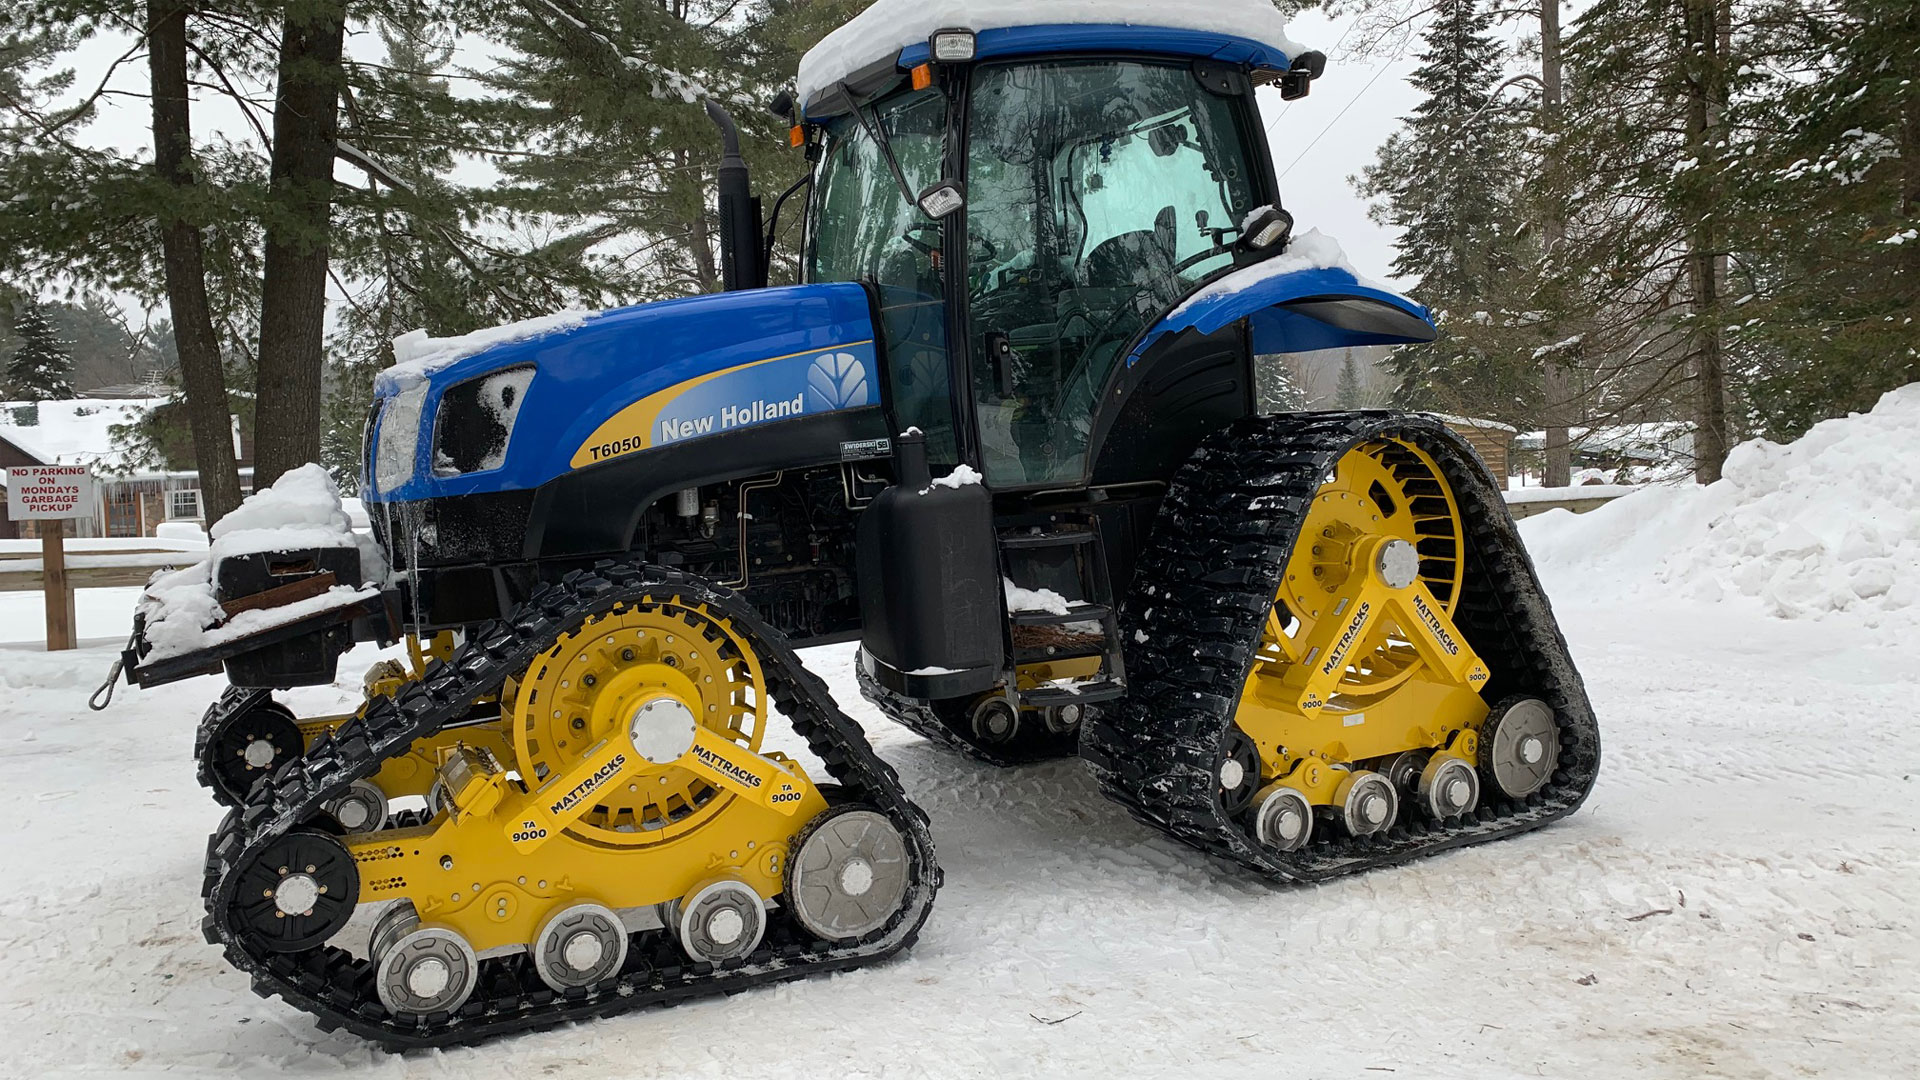 9000-LM Series Tracks on a New Holland T6050